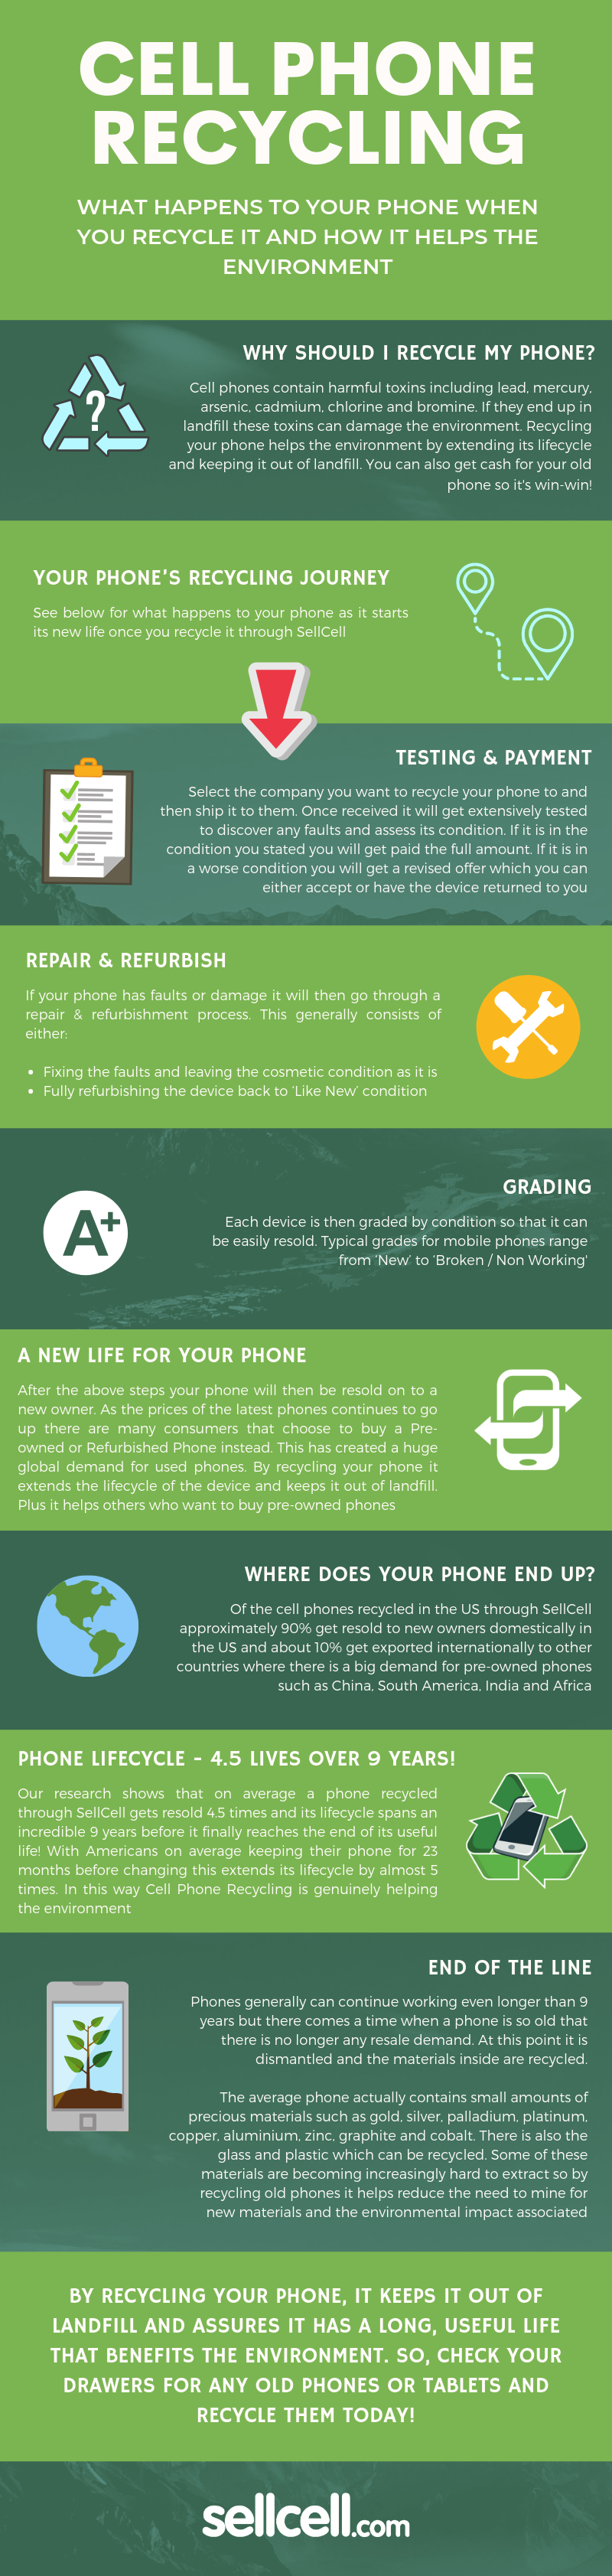 What Happens to Your Phone When You Recycle it #infographic